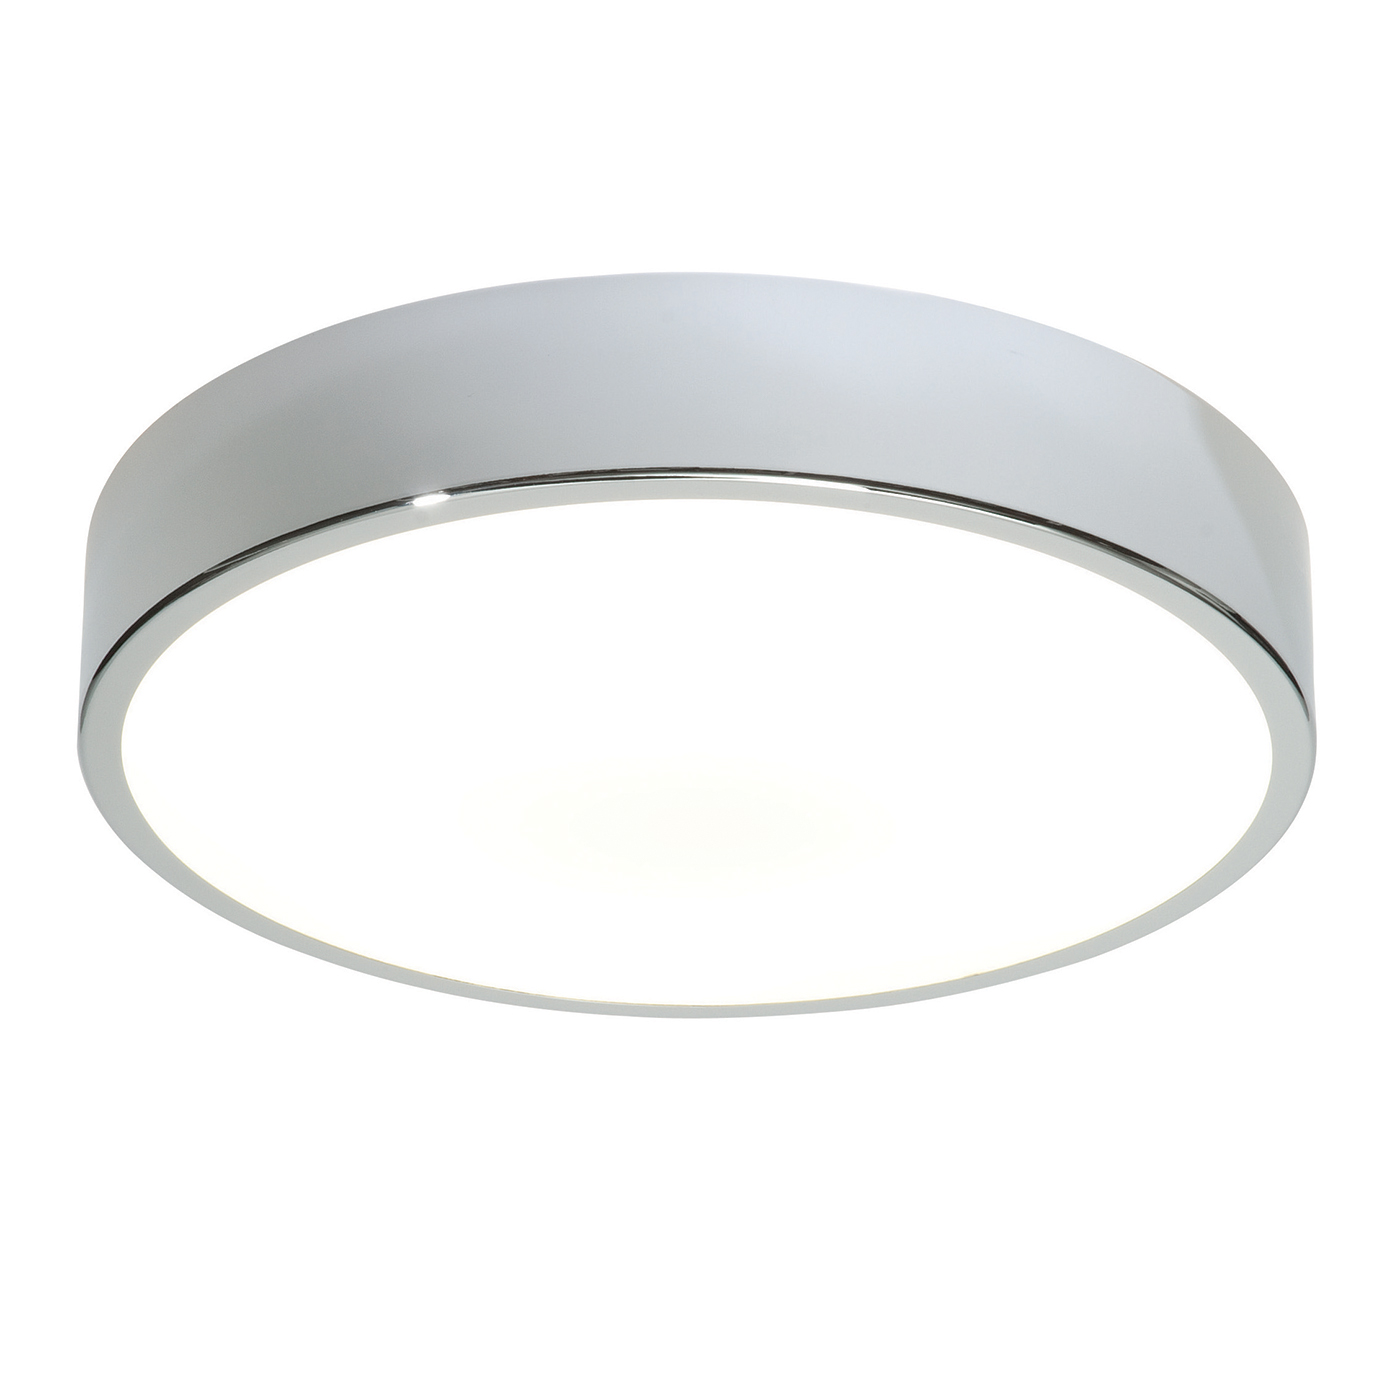 Endon Lipco 300mm flush bathroom ceiling light HF IP44 28W chrome & acrylic